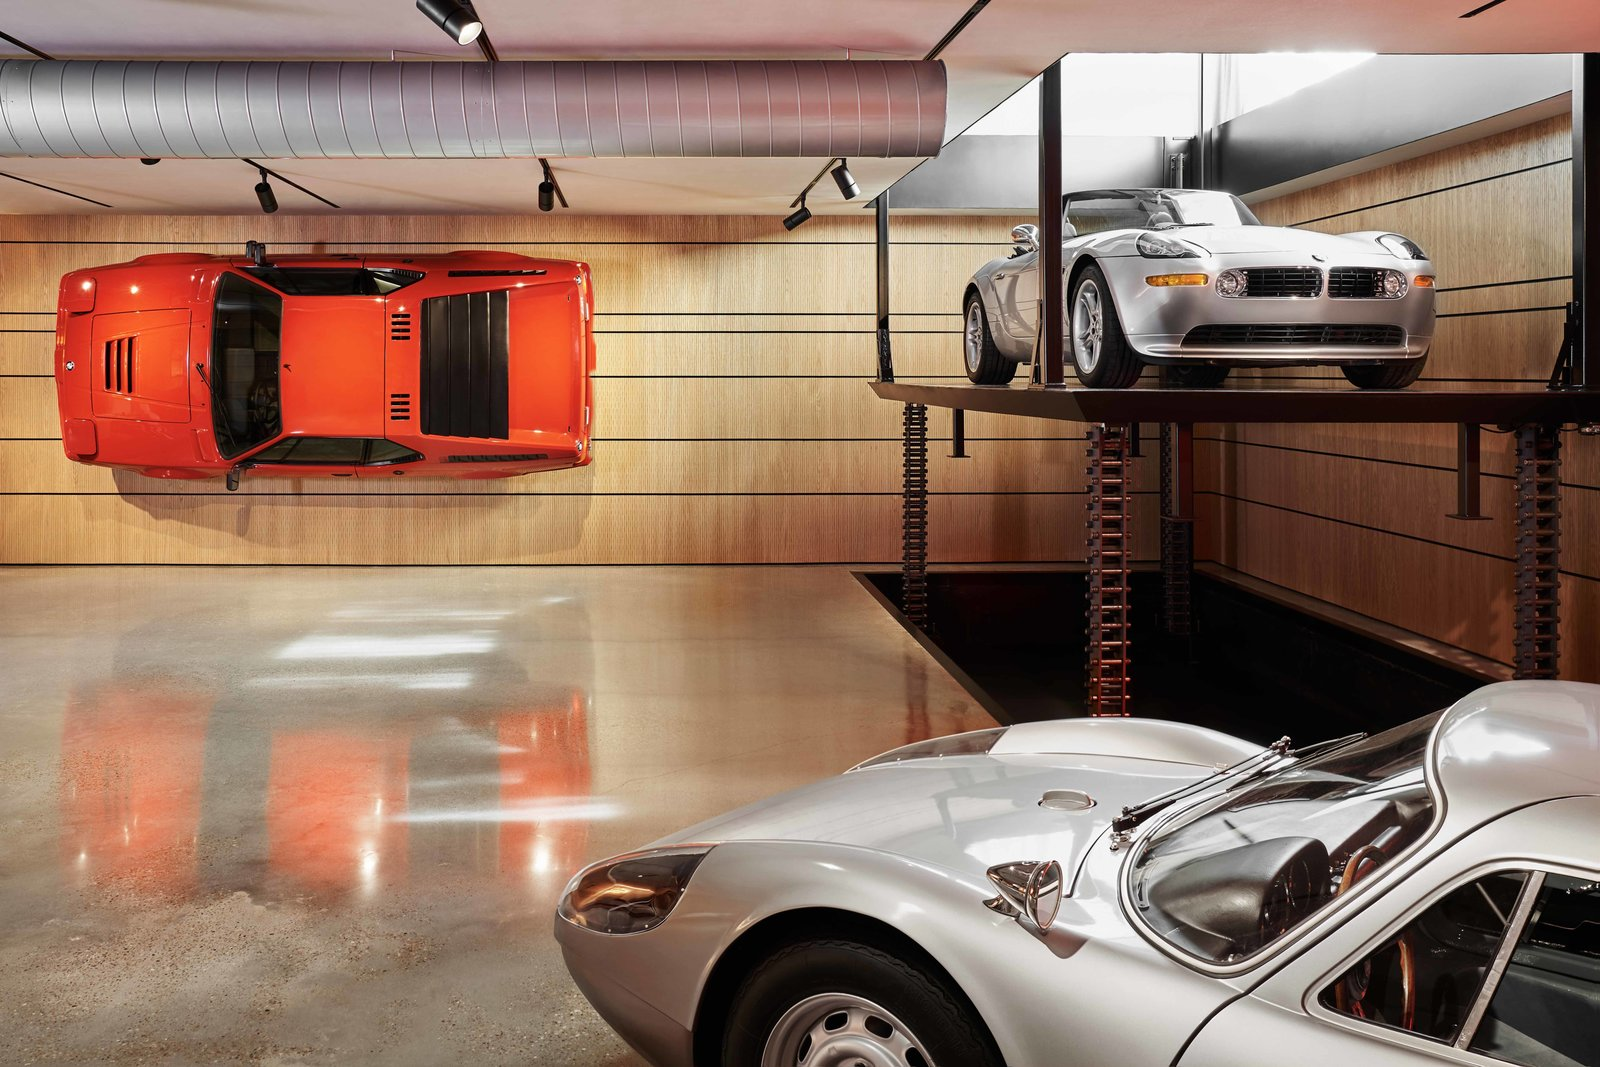 The Garage by Shiflet Group Architects and Mark Ashby Design